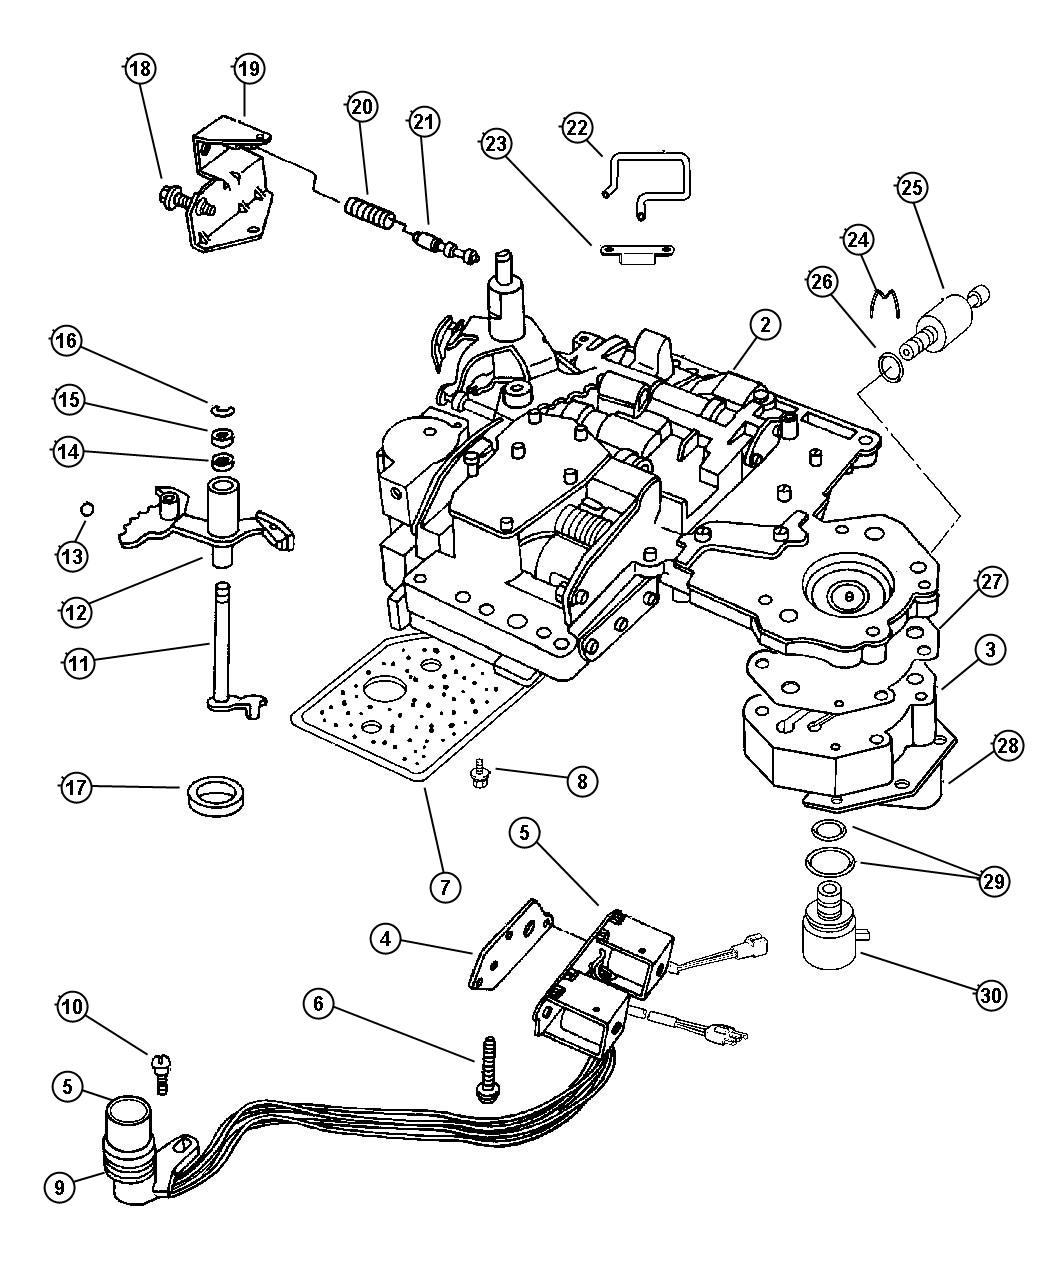 2000 Dodge Dakota Fuse Box Diagram For Transmission : 51